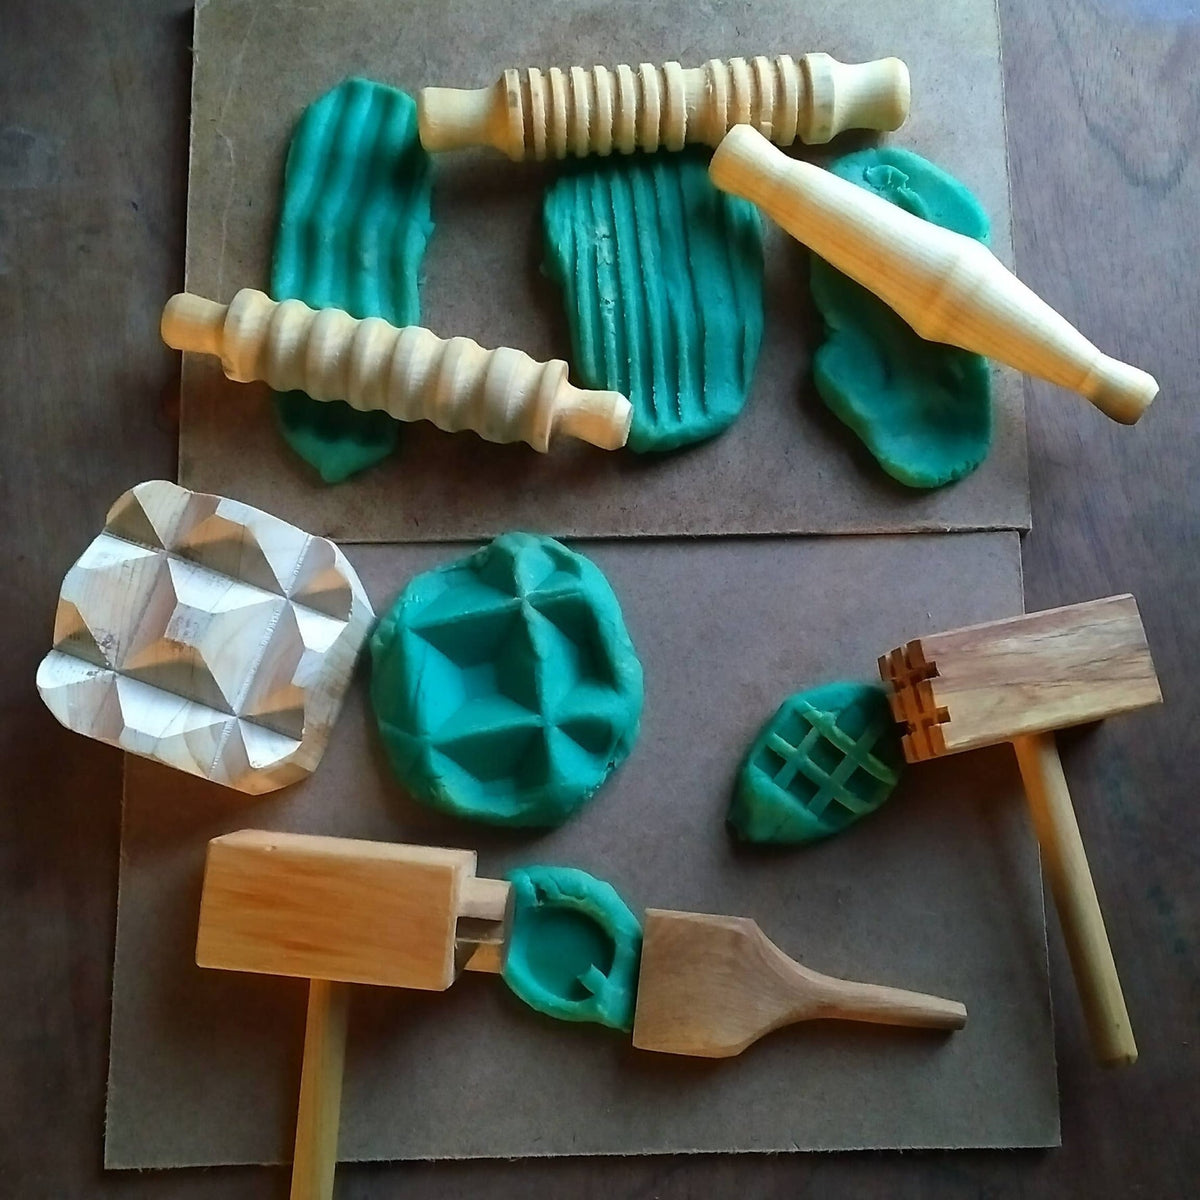 Playdough Wooden Tool Set